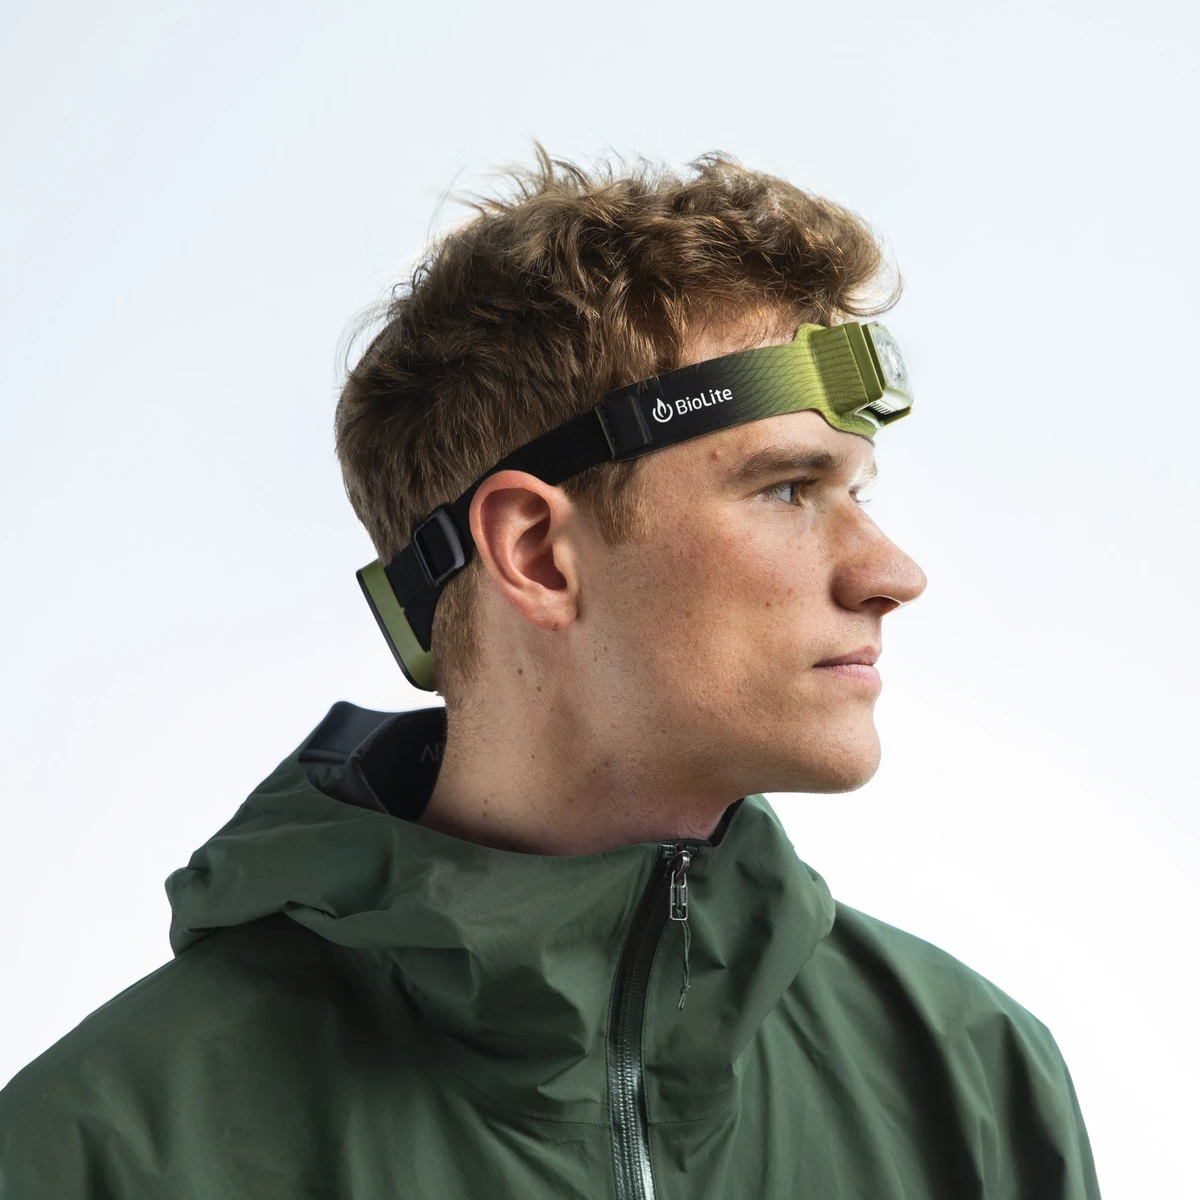 BioLite HeadLamp 750 Moss Green